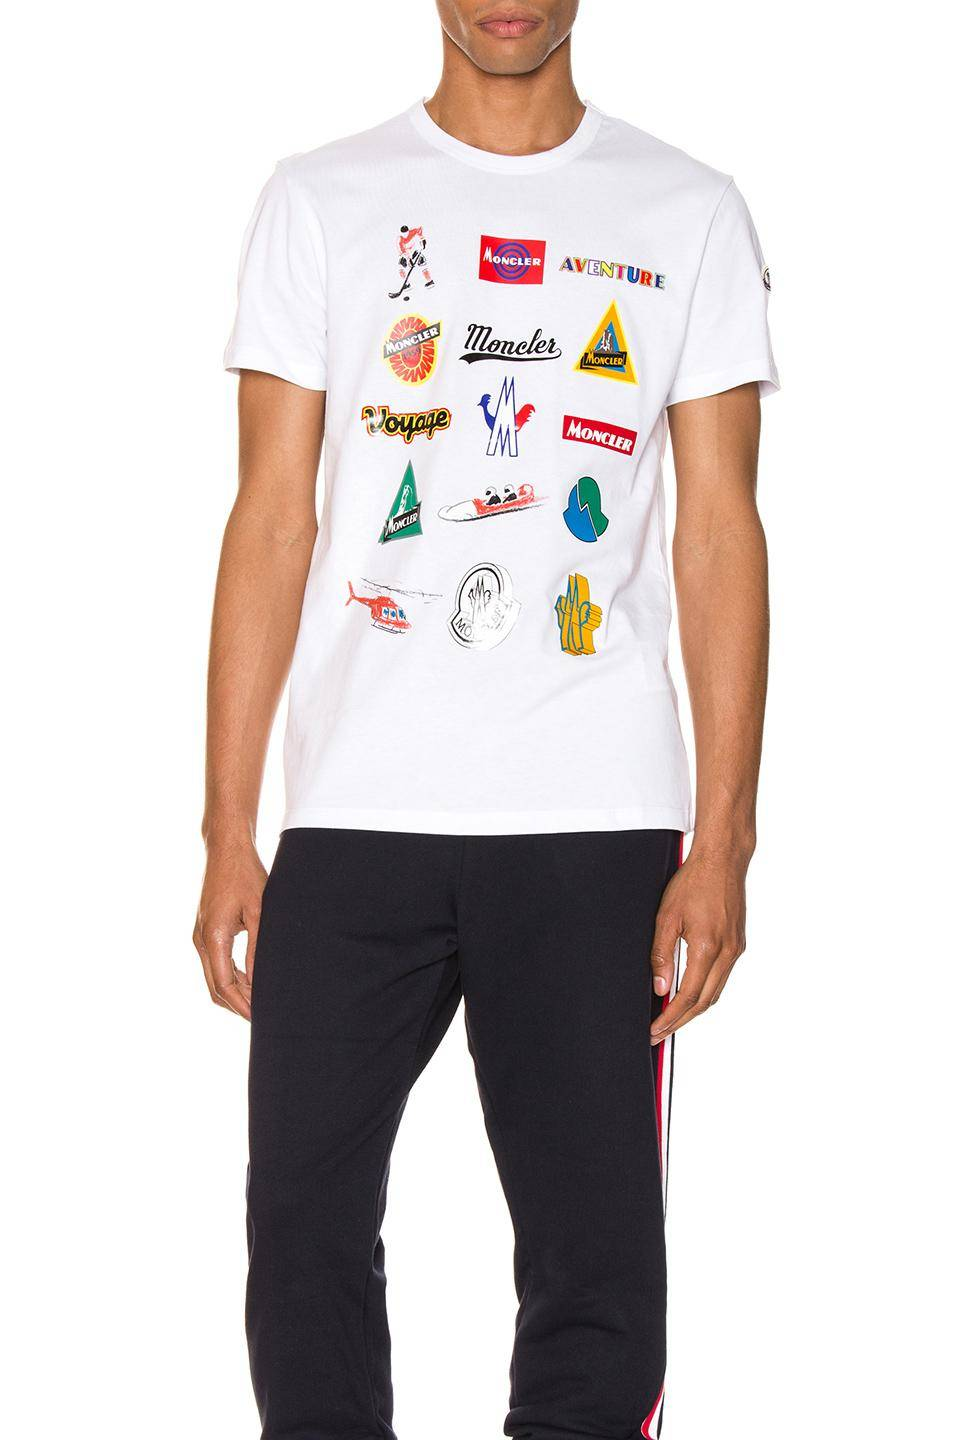 Moncler Graphic Tee - White - Moncler T-shirts